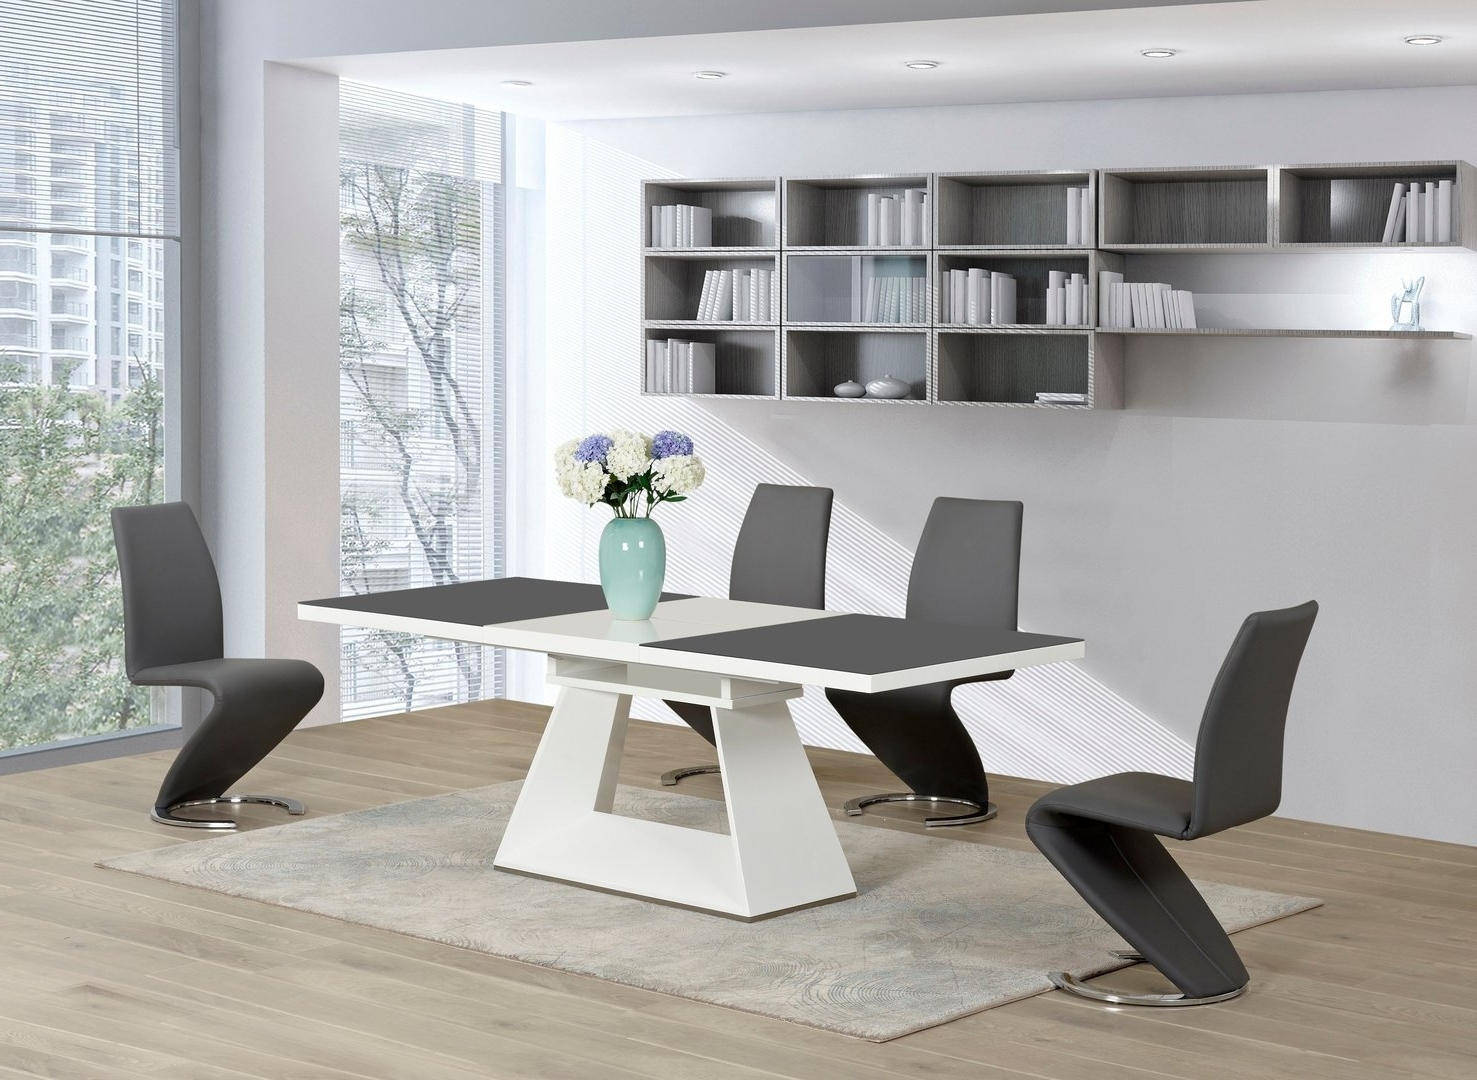 Oval Seats Round Super Square Chairs And Table Argos Oak White Throughout Popular Square Extendable Dining Tables And Chairs (View 22 of 25)